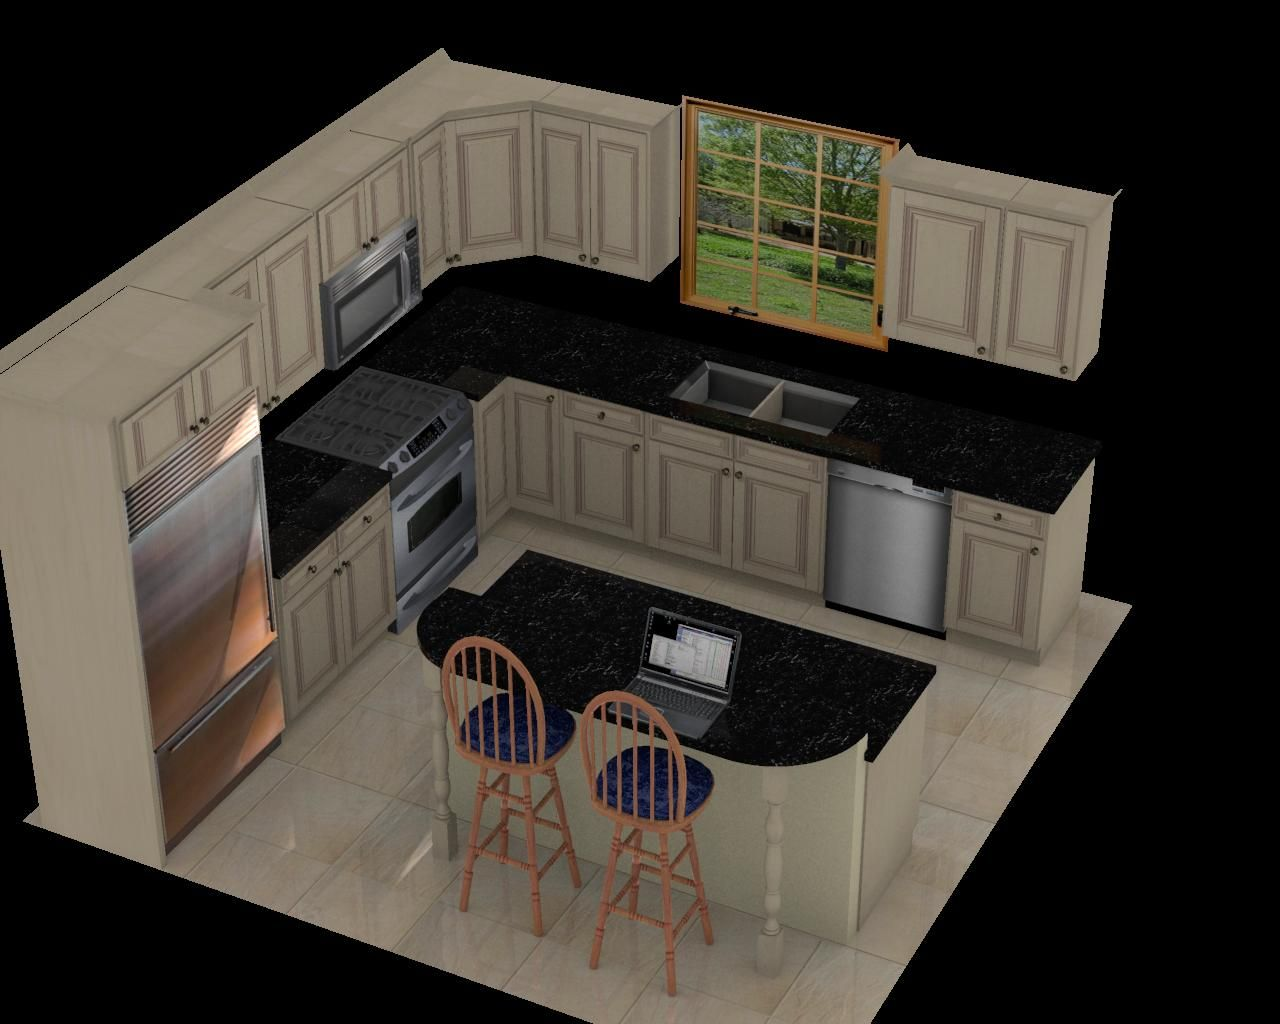 Luxury 12x12 kitchen layout with island 51 for with 12x12 for 7x12 kitchen ideas